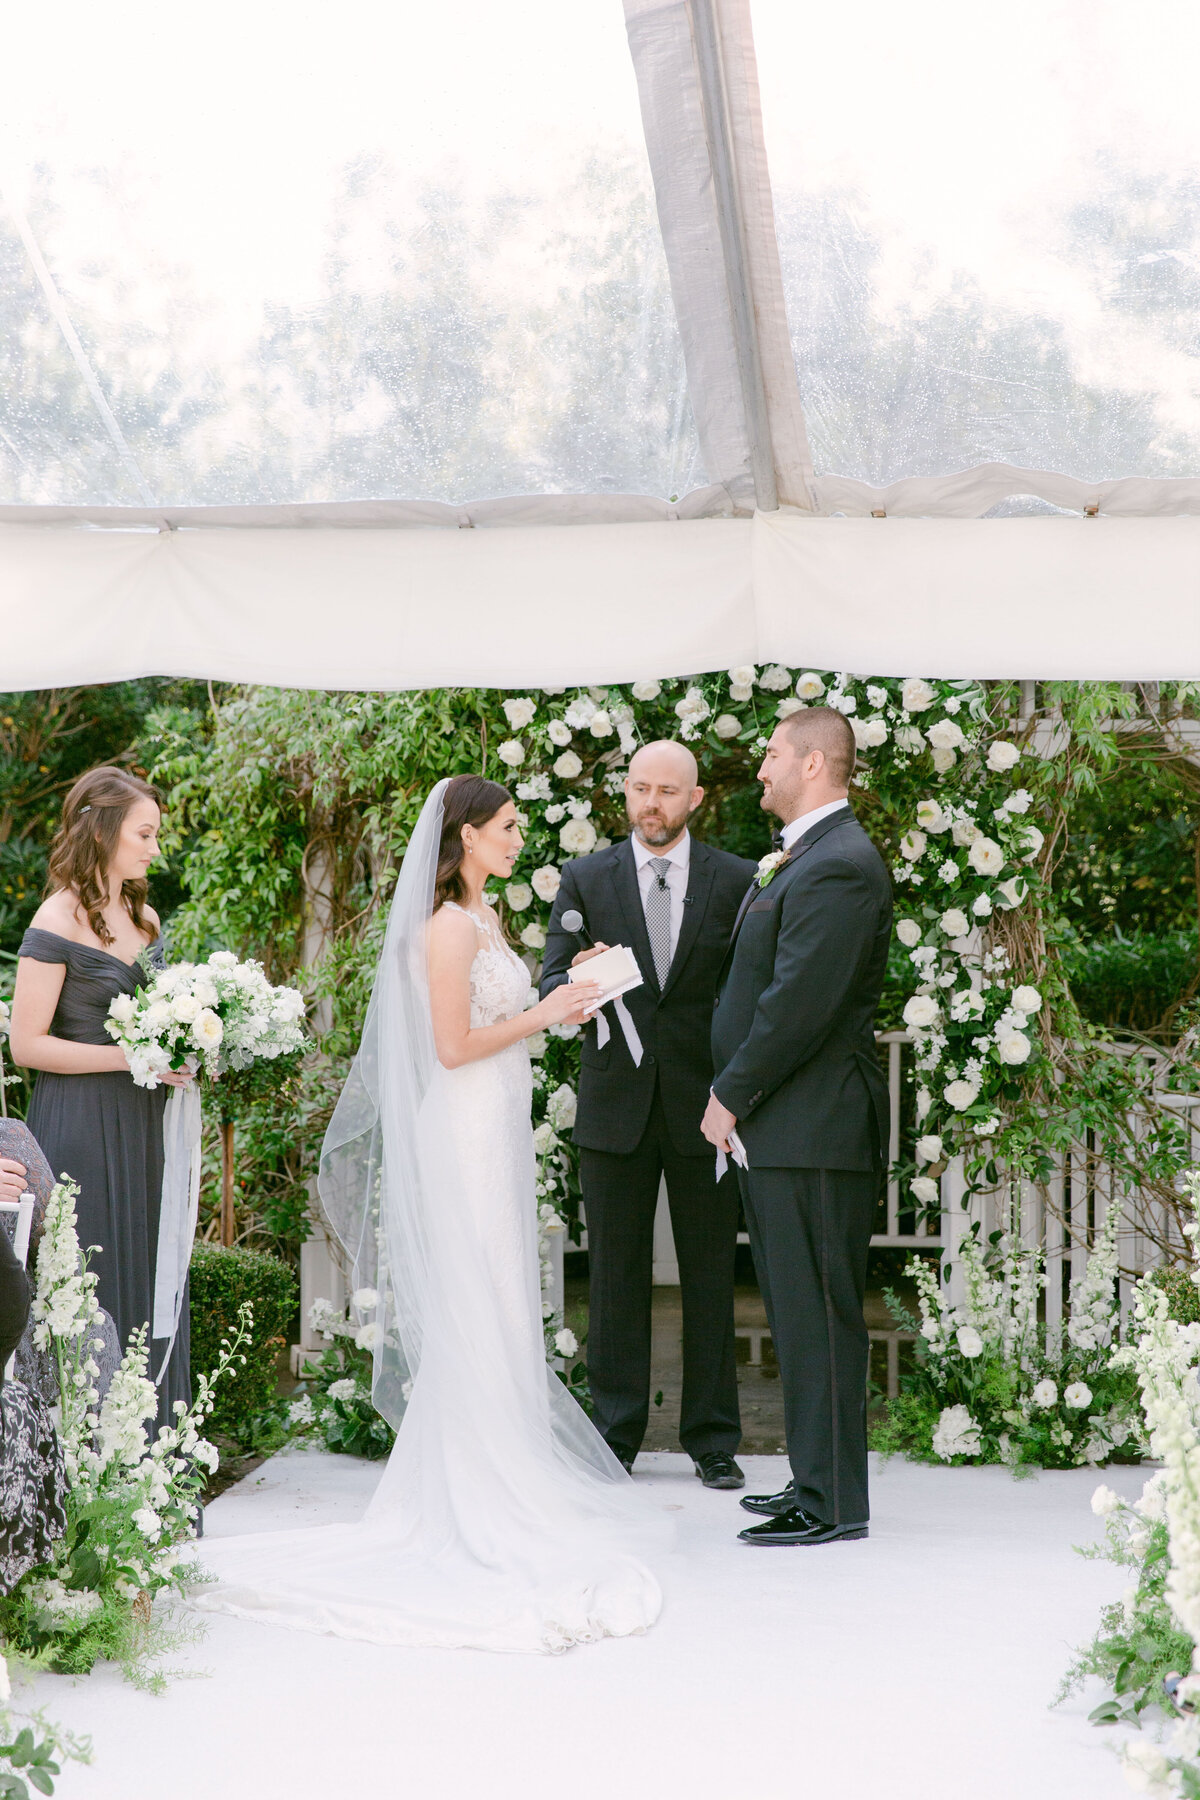 Tretter_Wedding_Carmel_Mountain_Ranch_San_Diego_California_Jacksonville_Florida_Devon_Donnahoo_Photography_1367